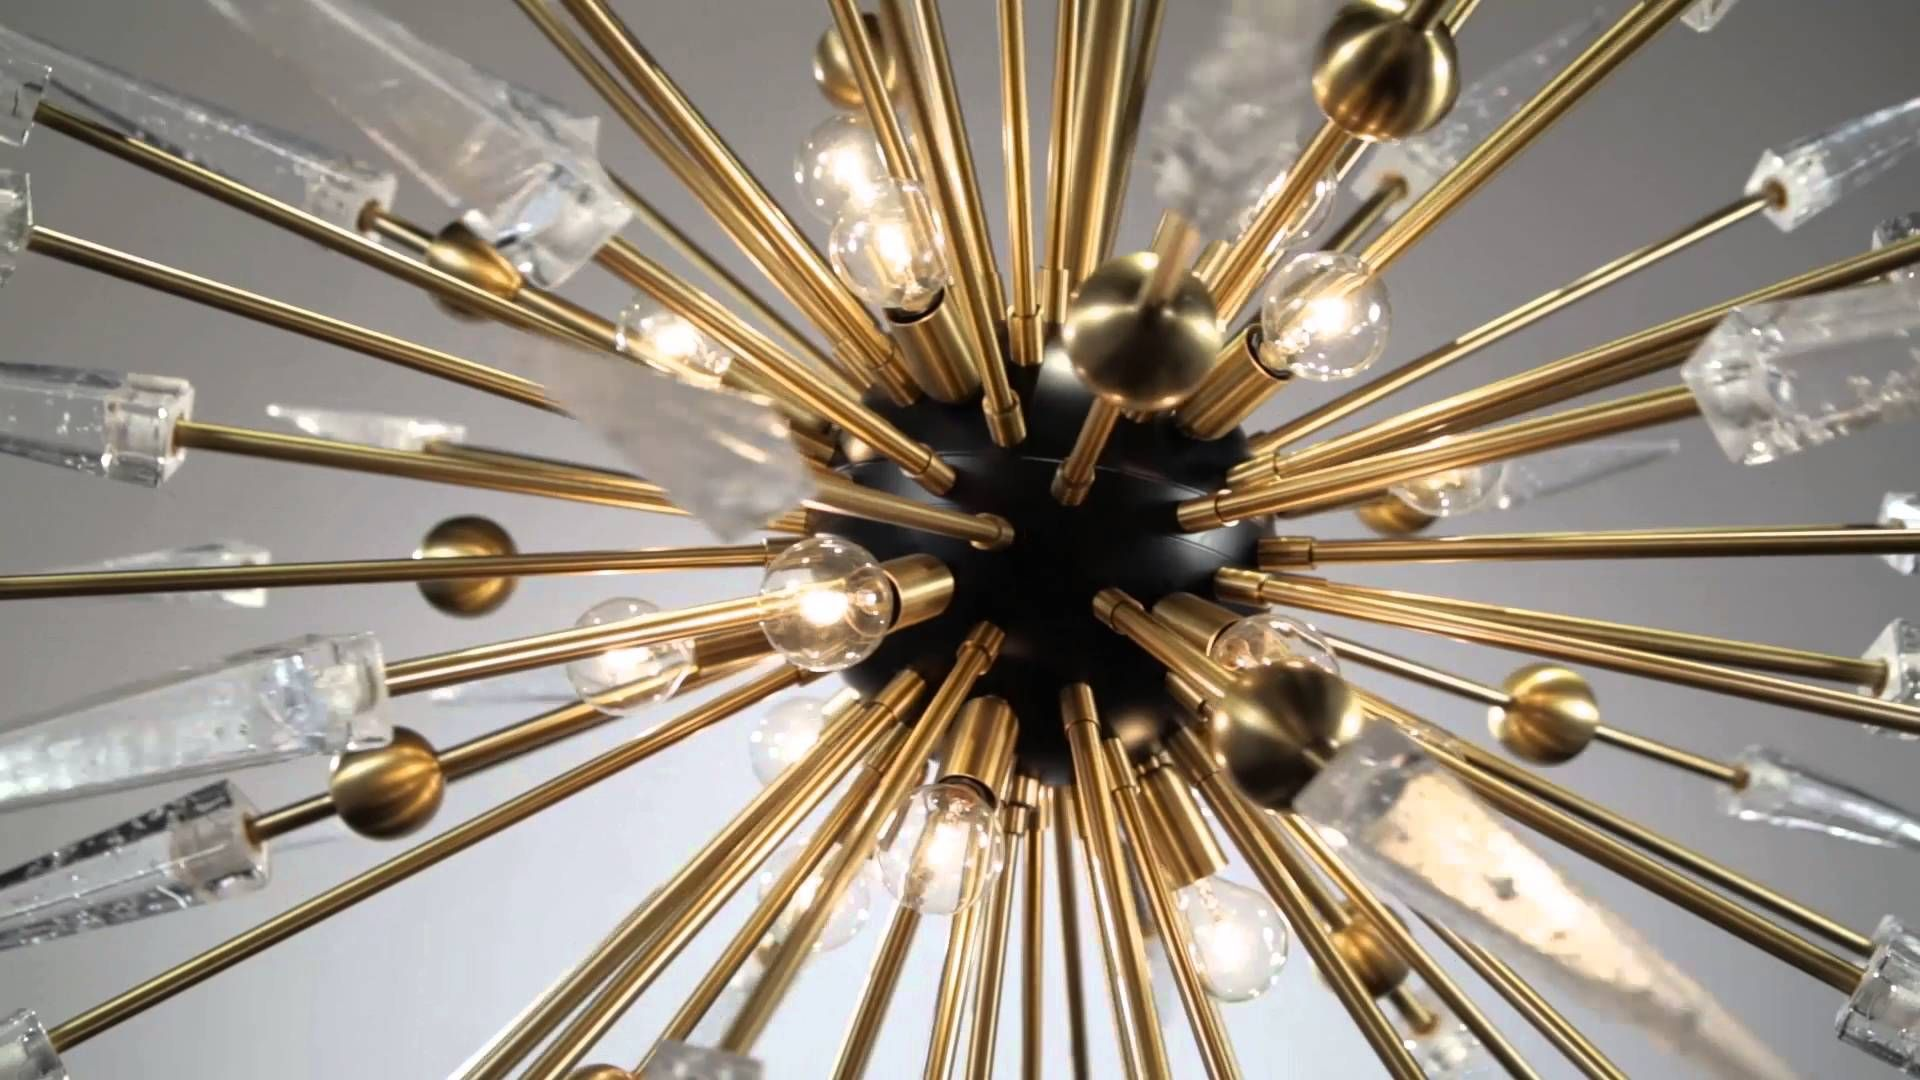 Discover the sparta chandelier by hudson valley lighting discover the sparta chandelier by hudson valley lighting chandelier sparta lighting arubaitofo Choice Image